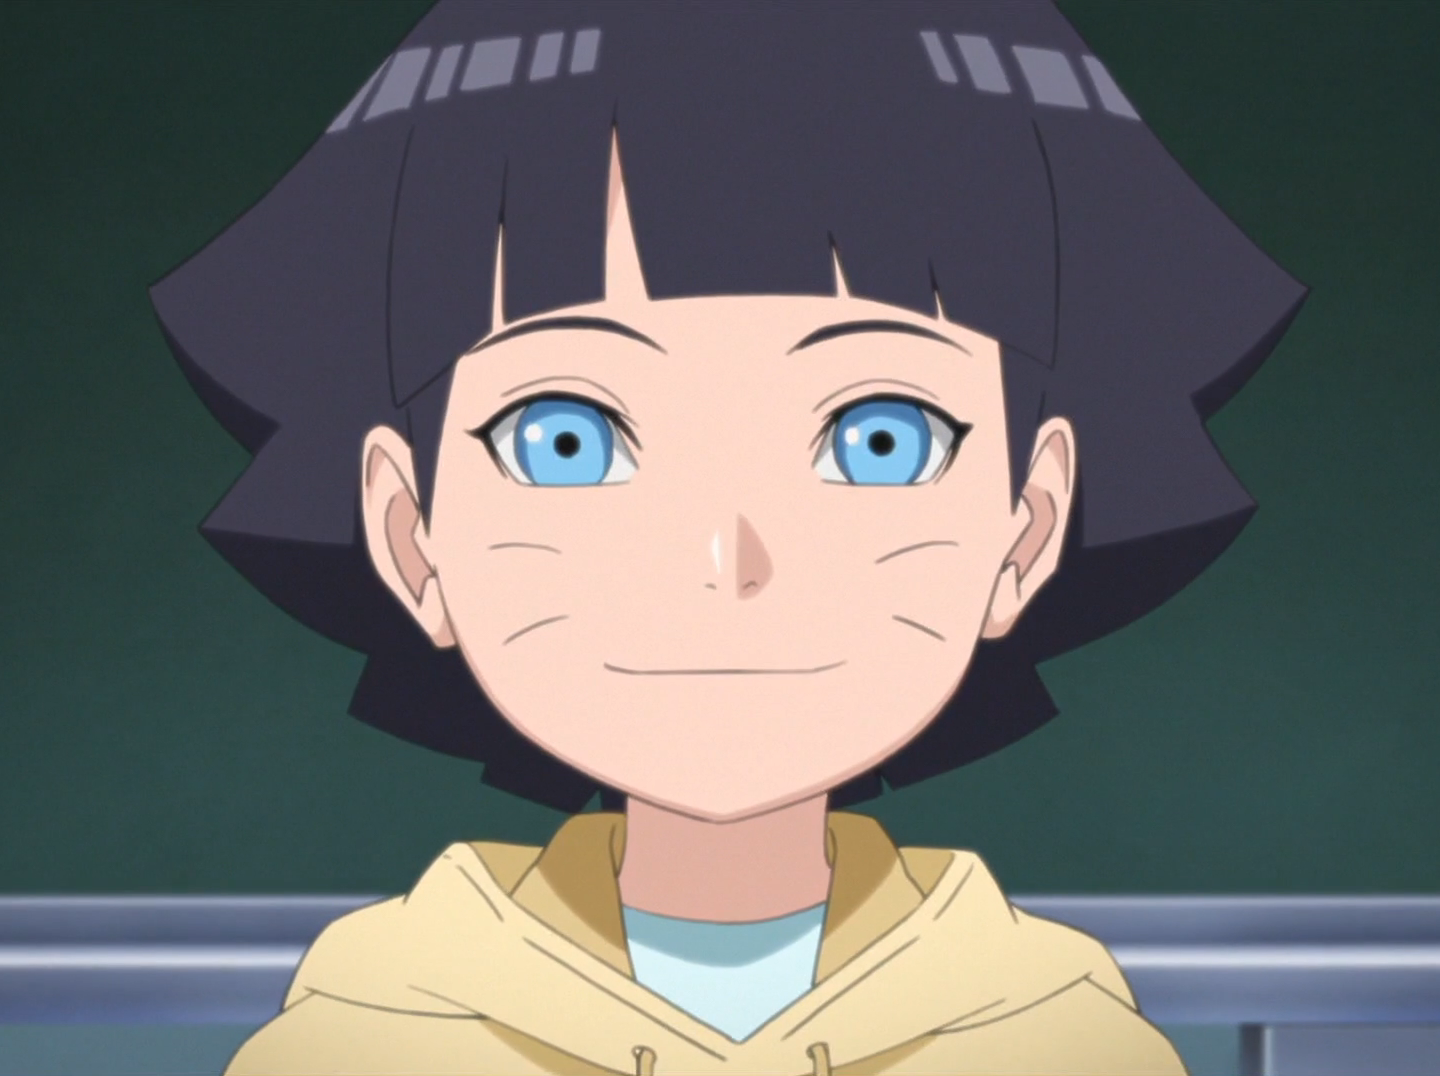 Himawari Uzumaki | Narutopedia | FANDOM powered by Wikia